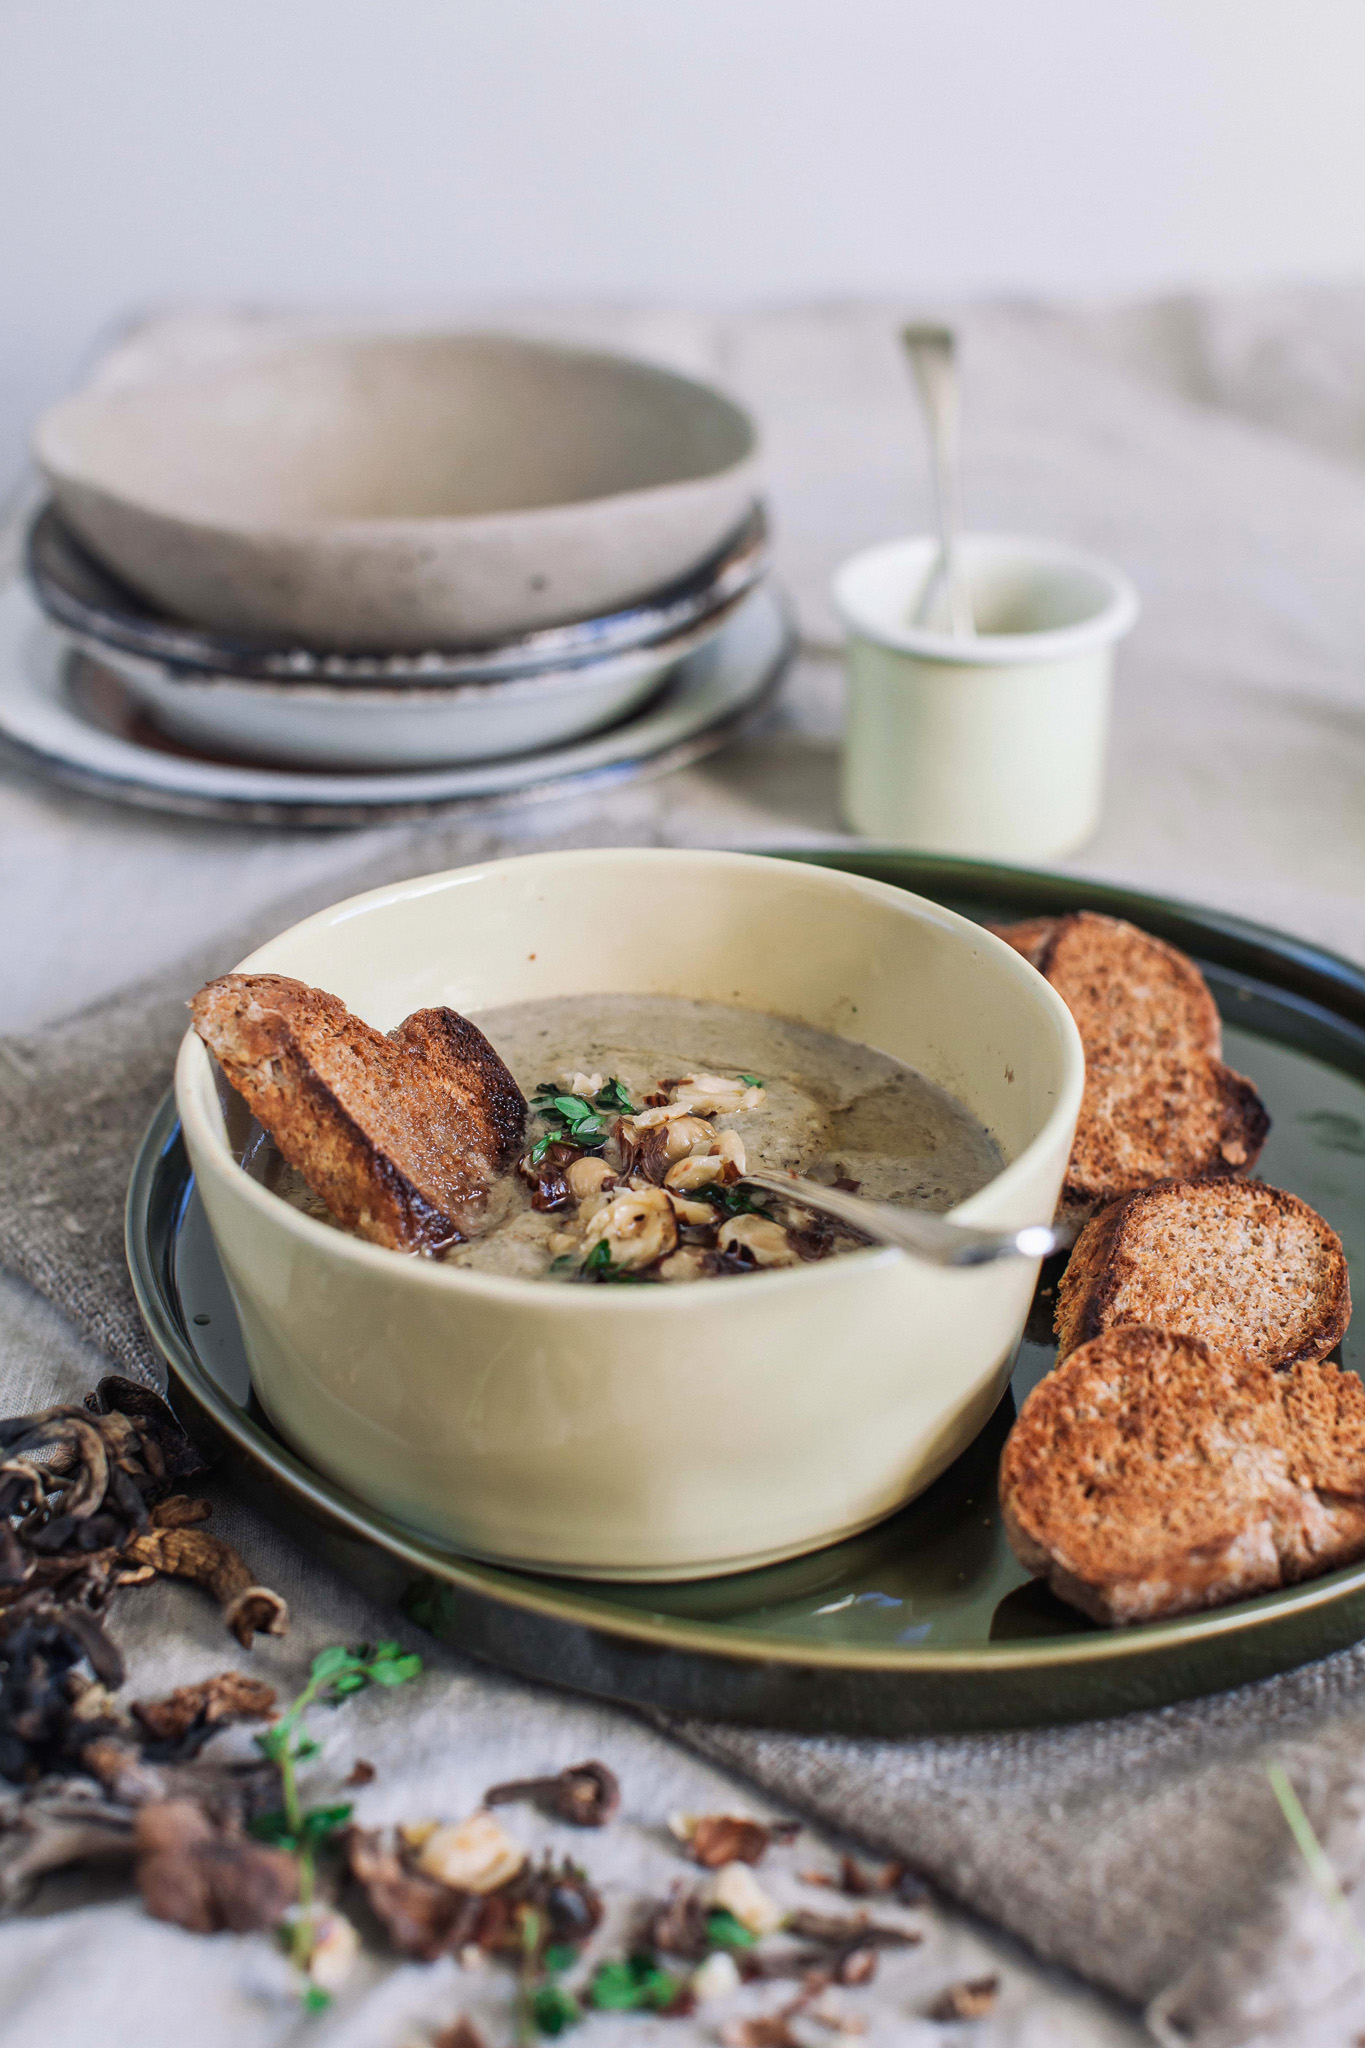 Mushroom soup with a hazelnut topping. Retreat // Food and lifestyle blog based in Sussex. Photography by Emma Gutteridge.